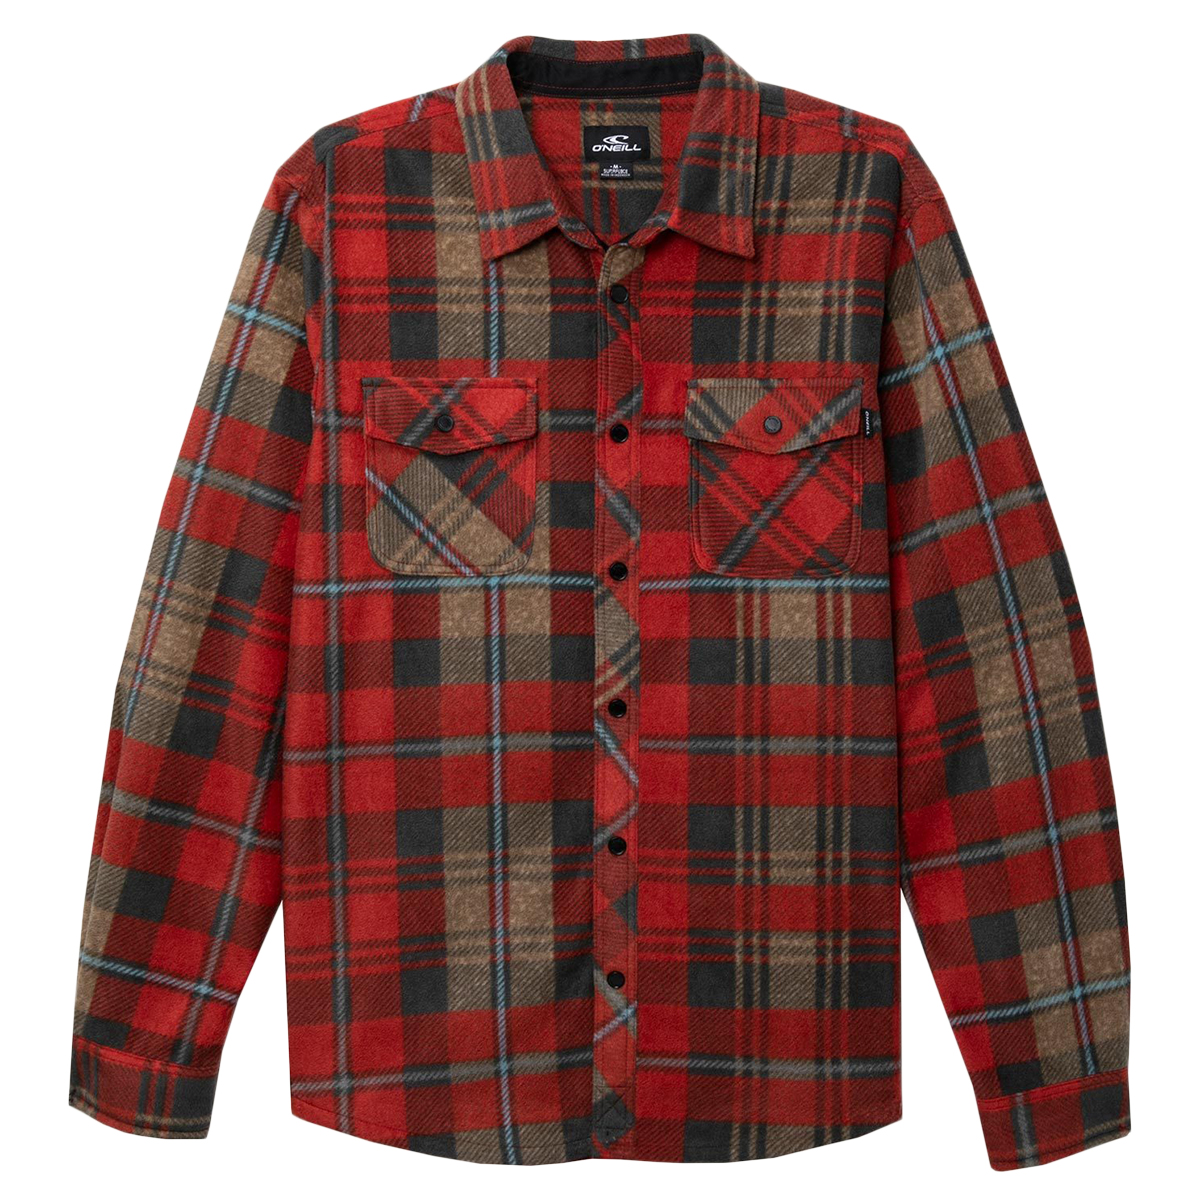 O'neill Men's Glacier Plaid Long-Sleeve Shirt - Red, XL